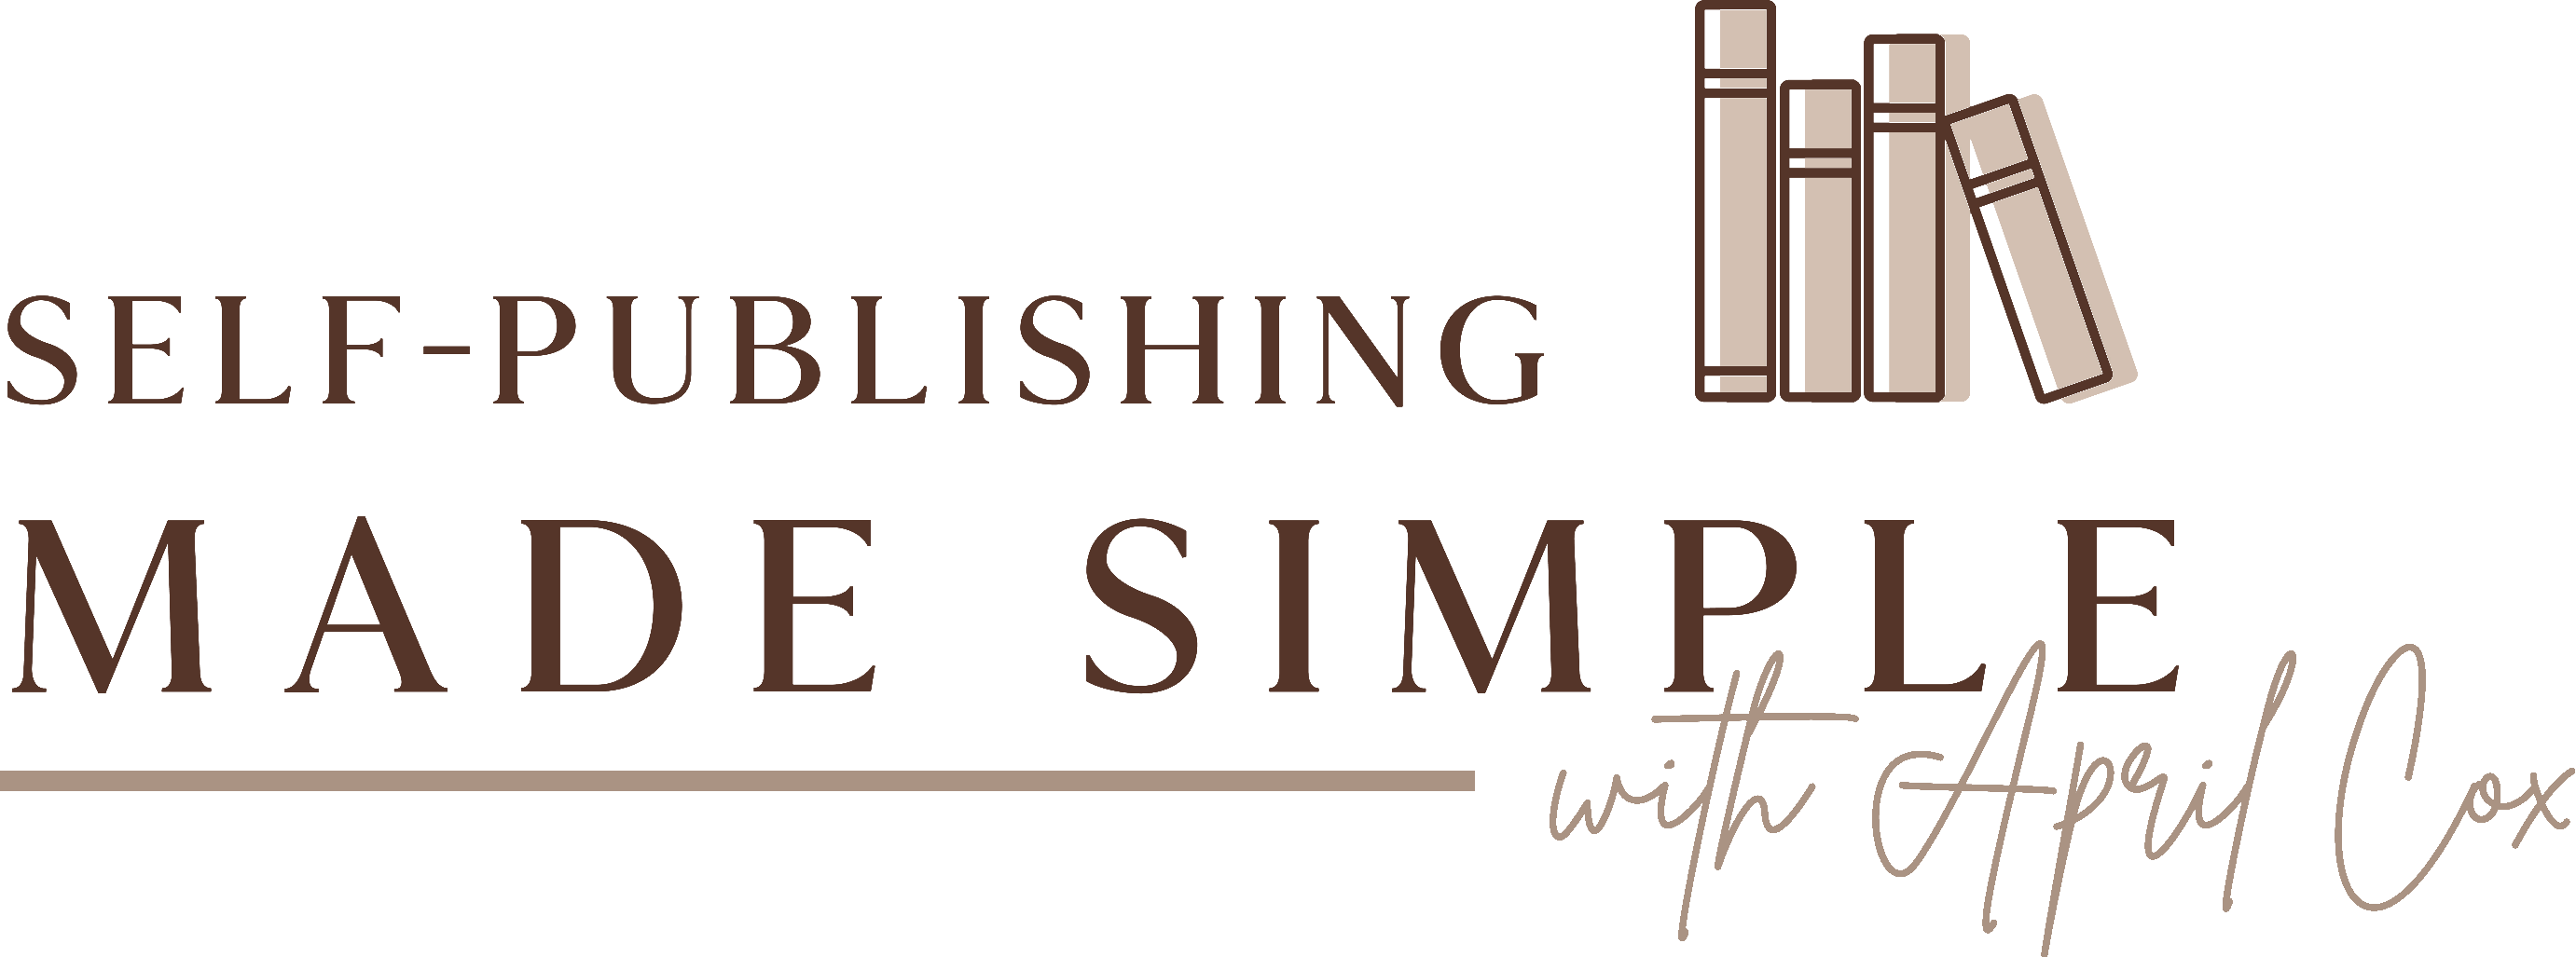 Self-Publishing Made Simple with April Cox